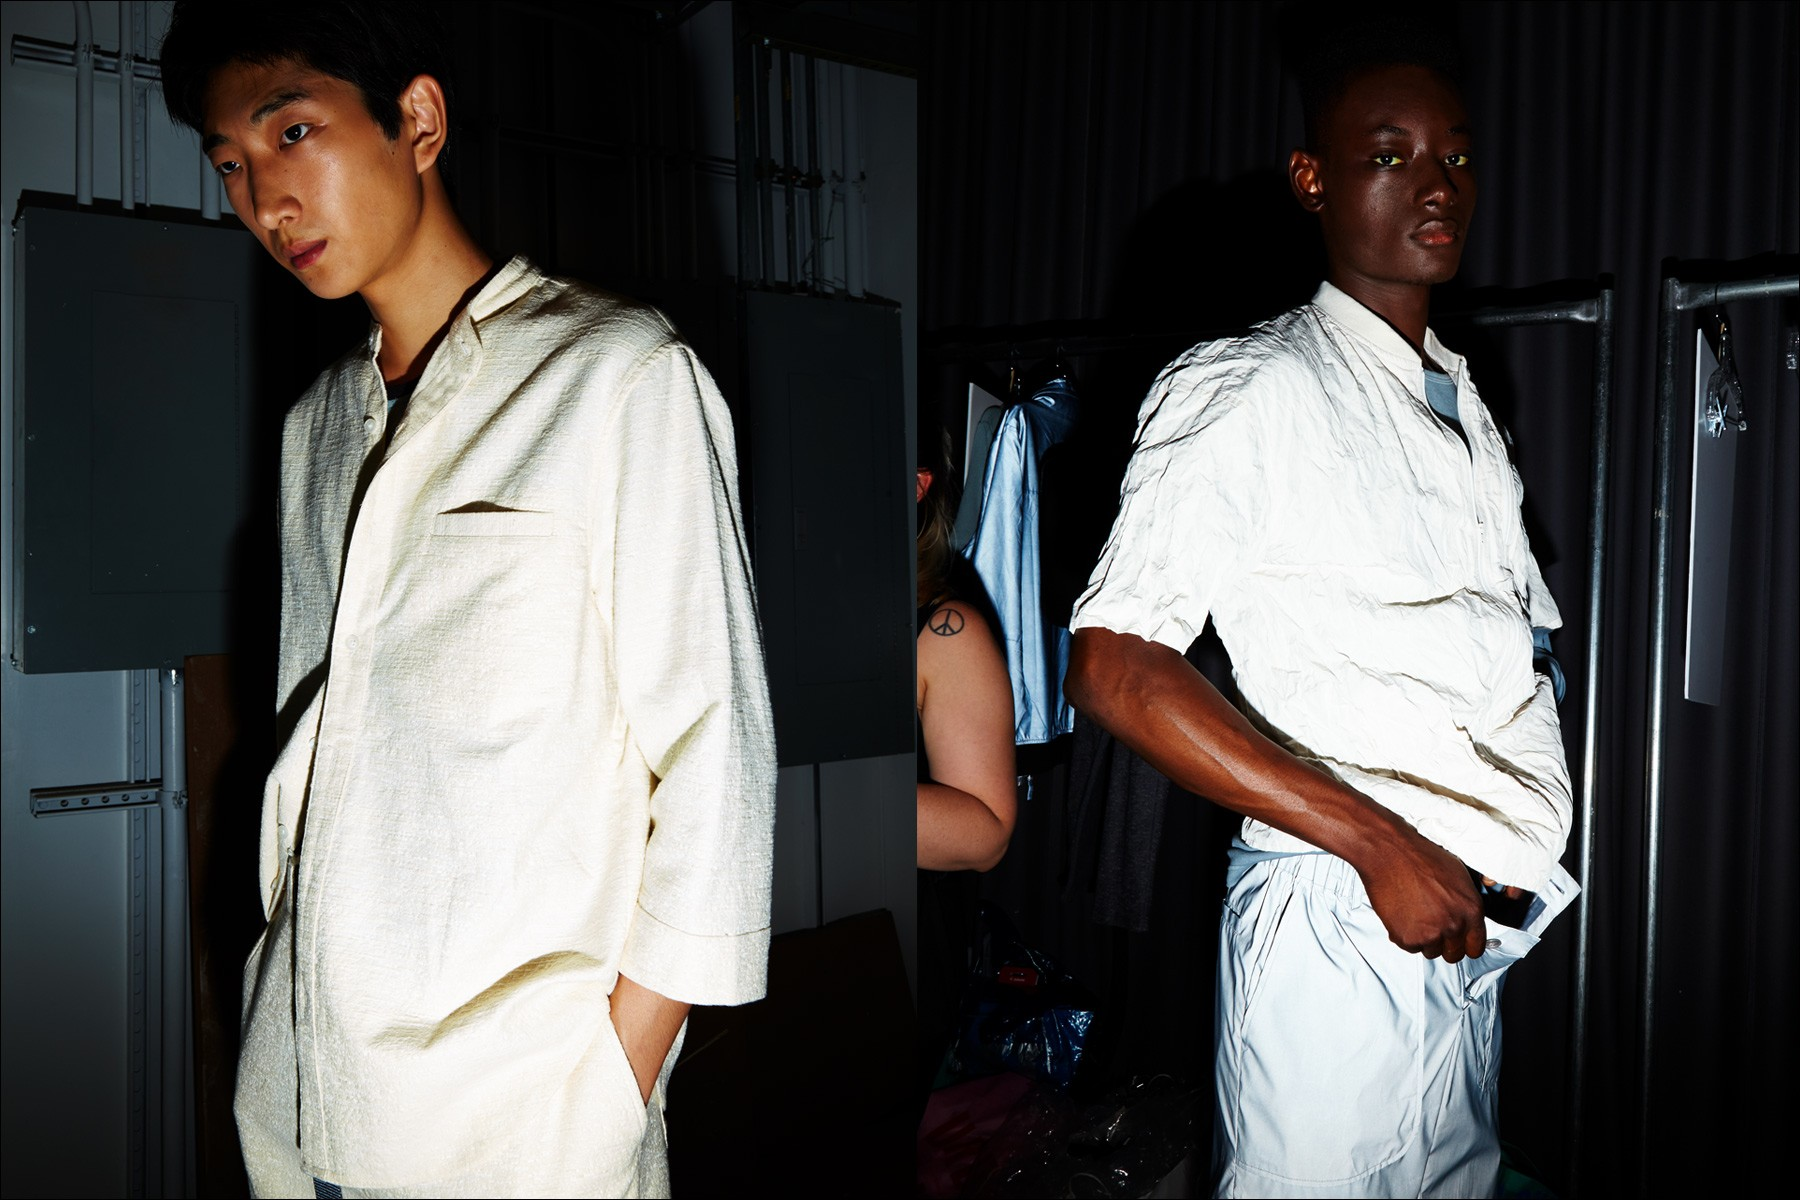 Spring/Summer menswear snapped backstage at Matiere for 2018. Photographed by Alexander Thompson for Ponyboy magazine NY.